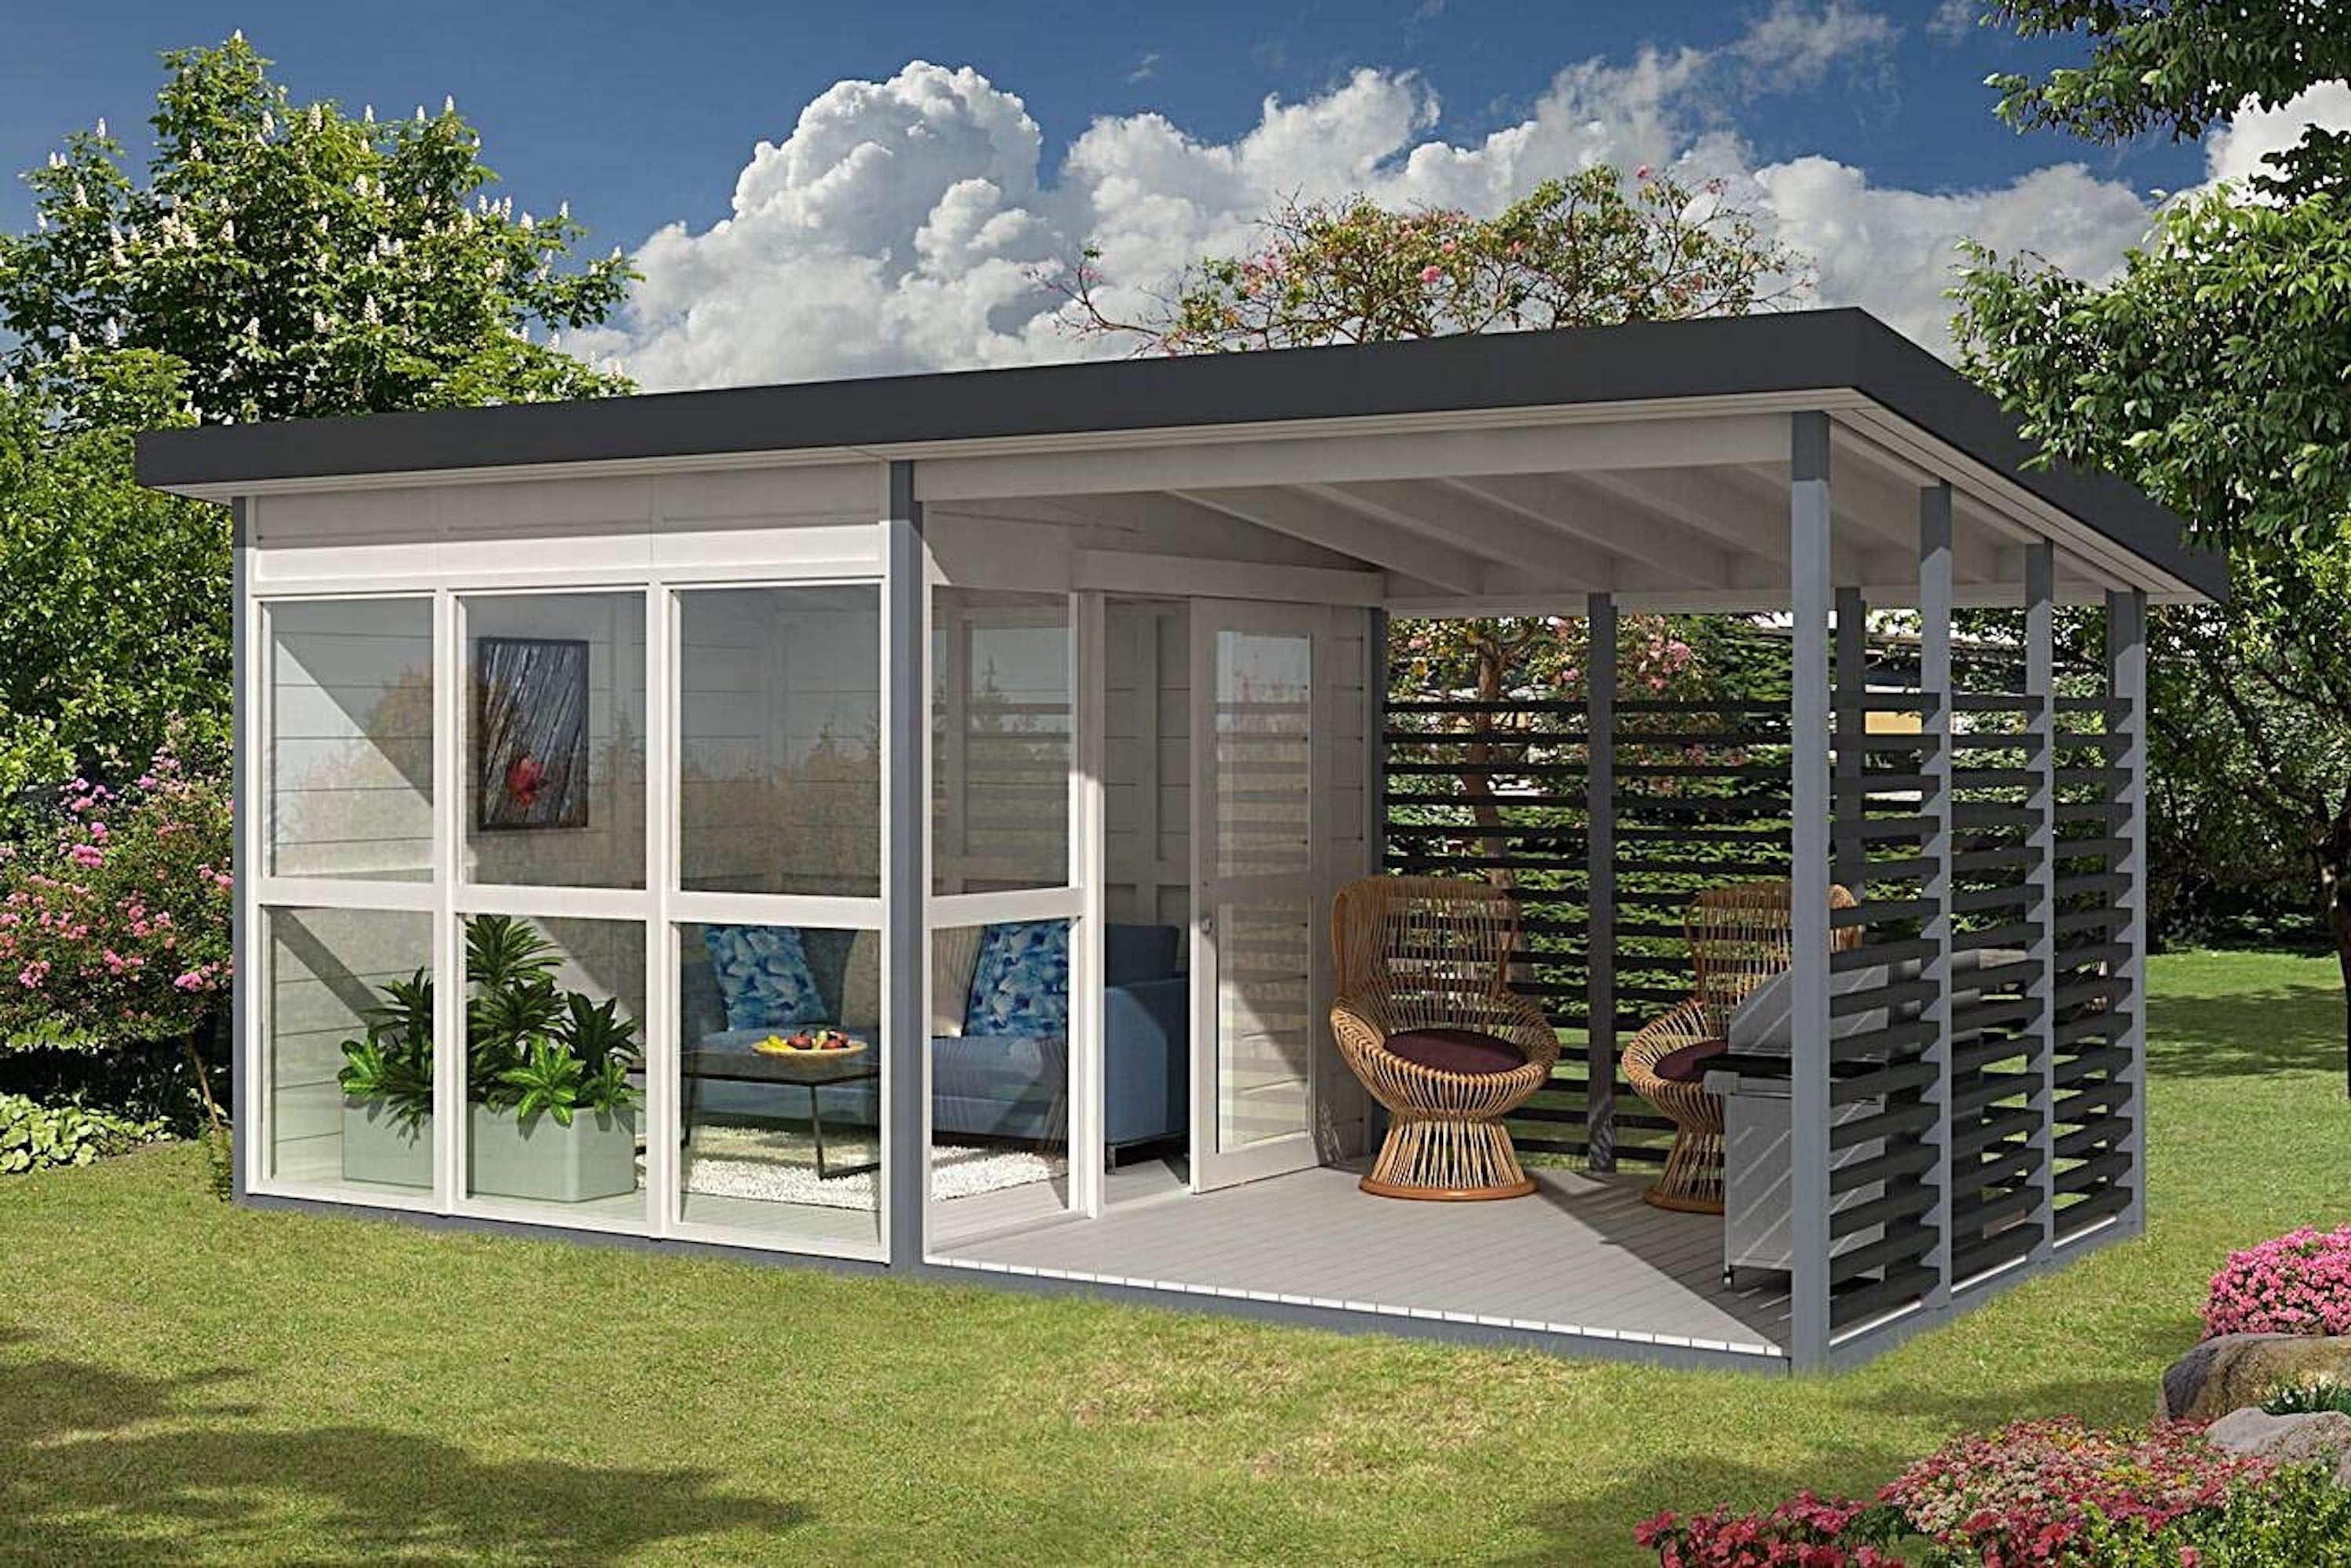 Amazon's viral $7K tiny house is back in stock